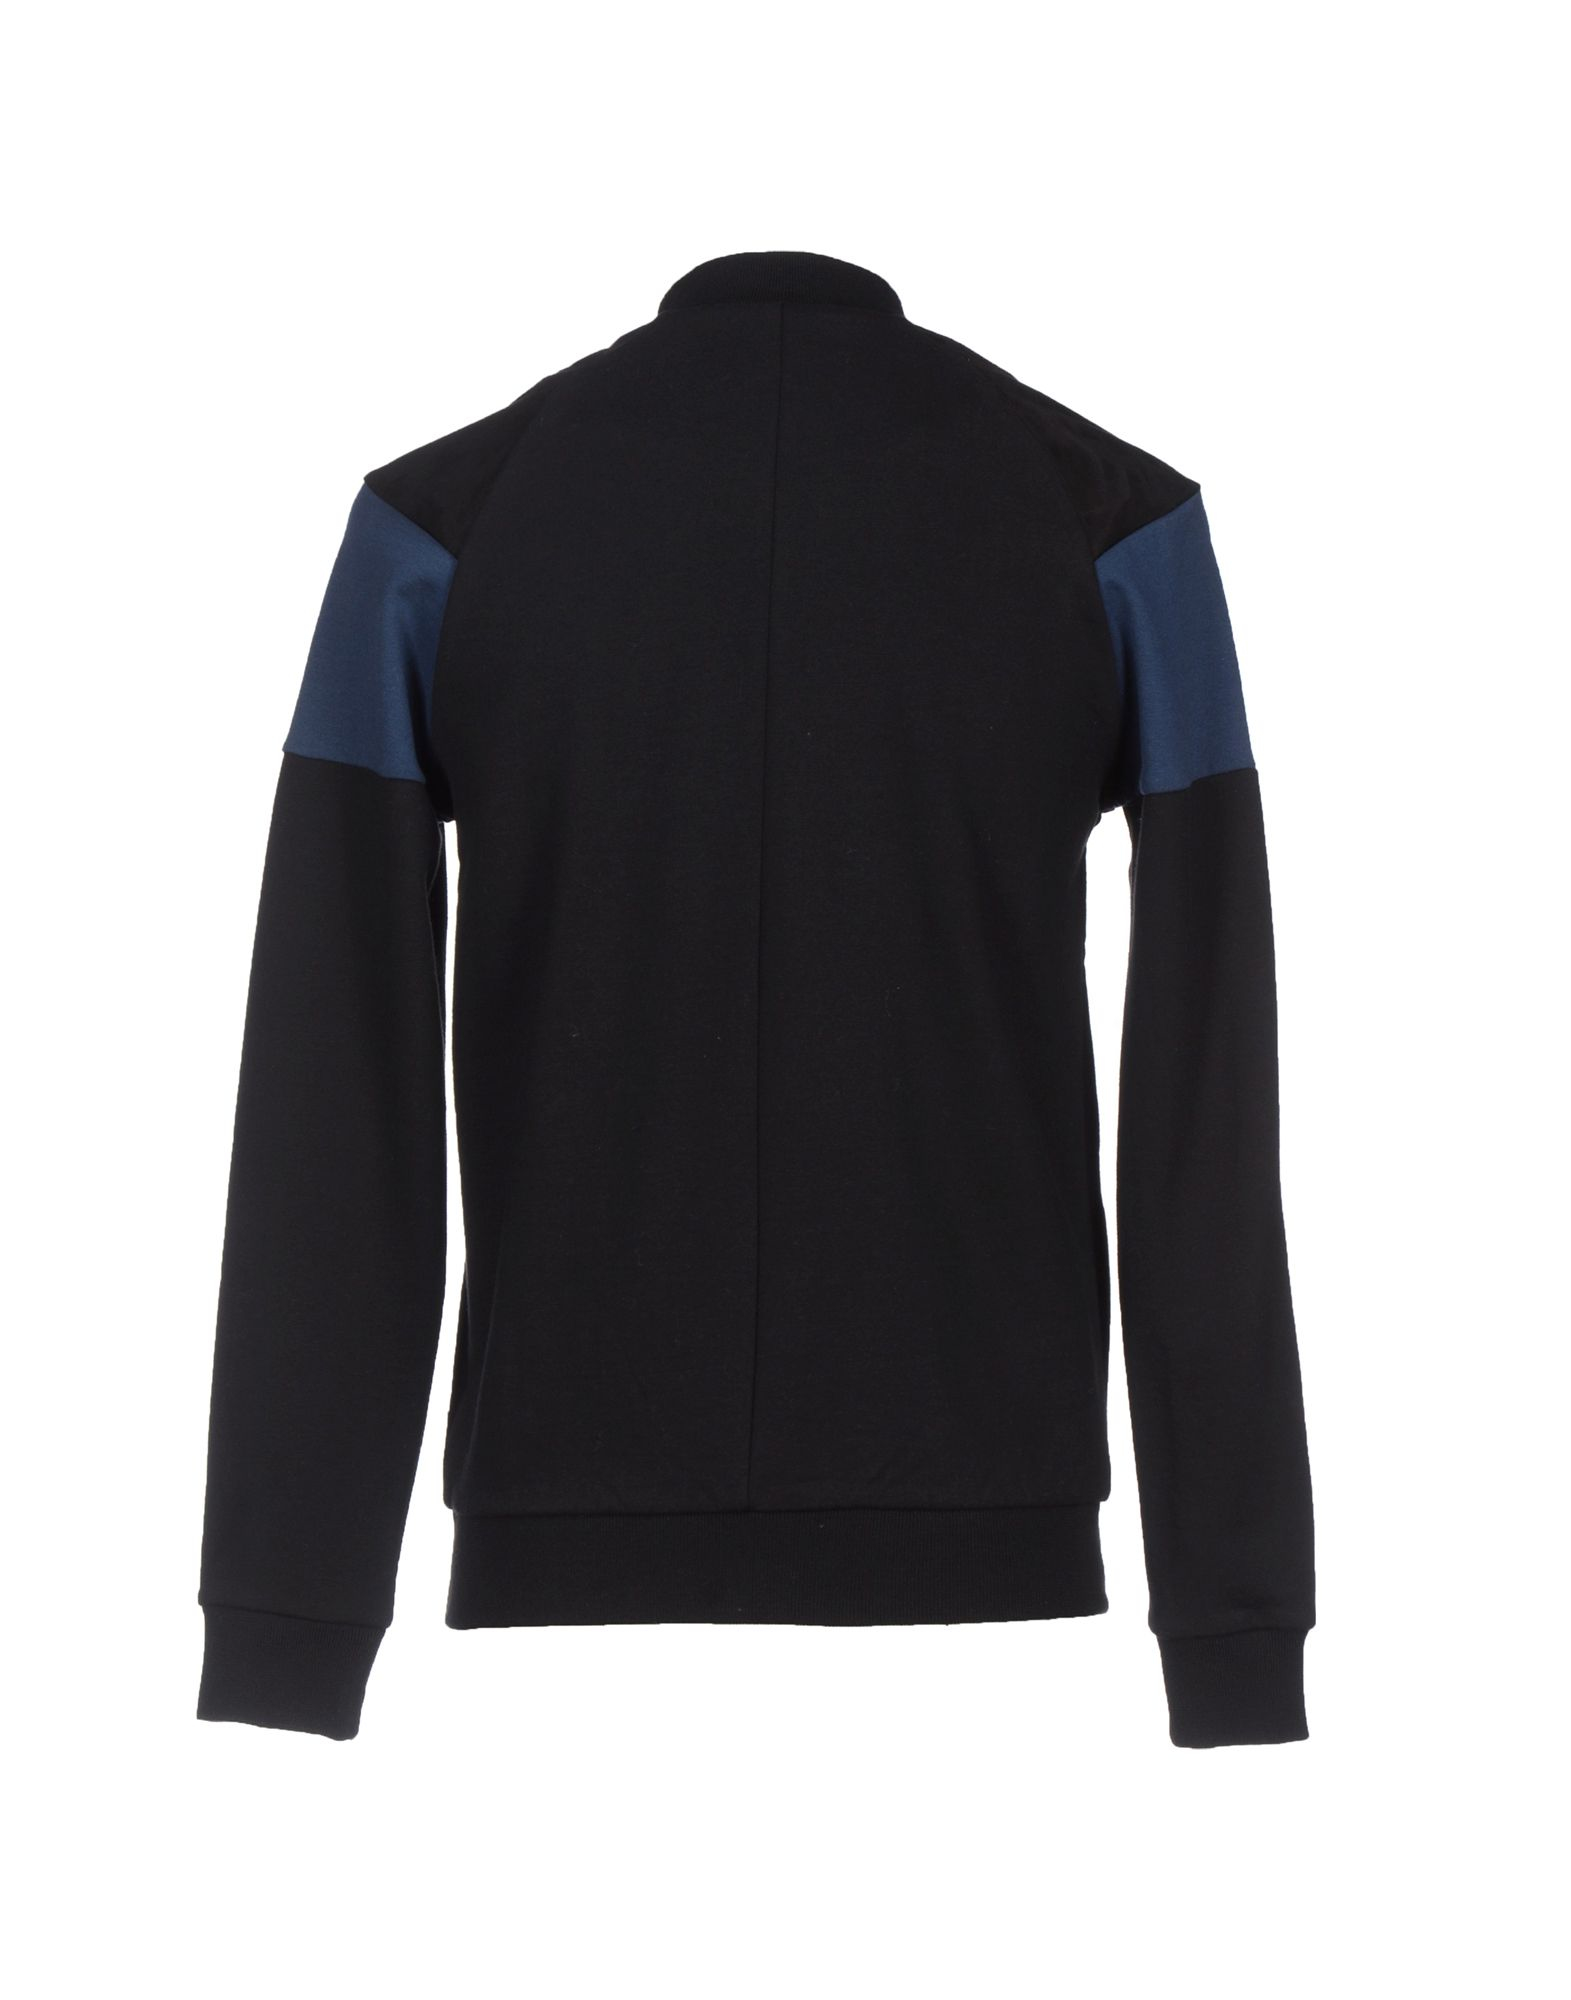 Lyst Eleven Paris Sweatshirt In Black For Men